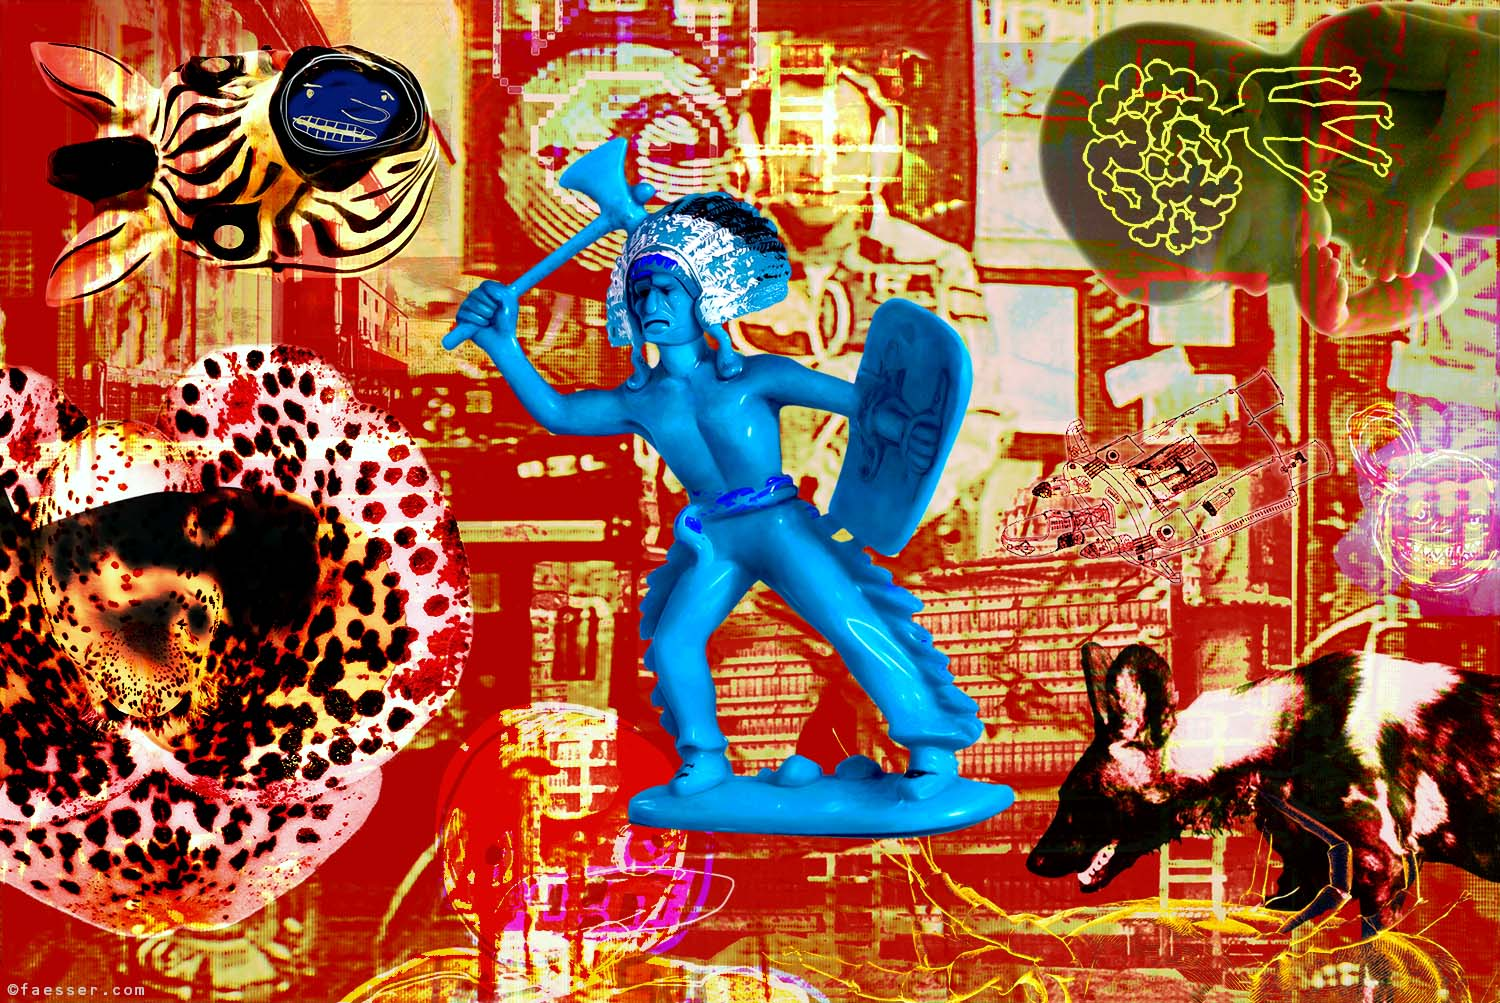 Blue indian toy figure amidst his natural environment; artist Roland Faesser, sculptor and painter 2013